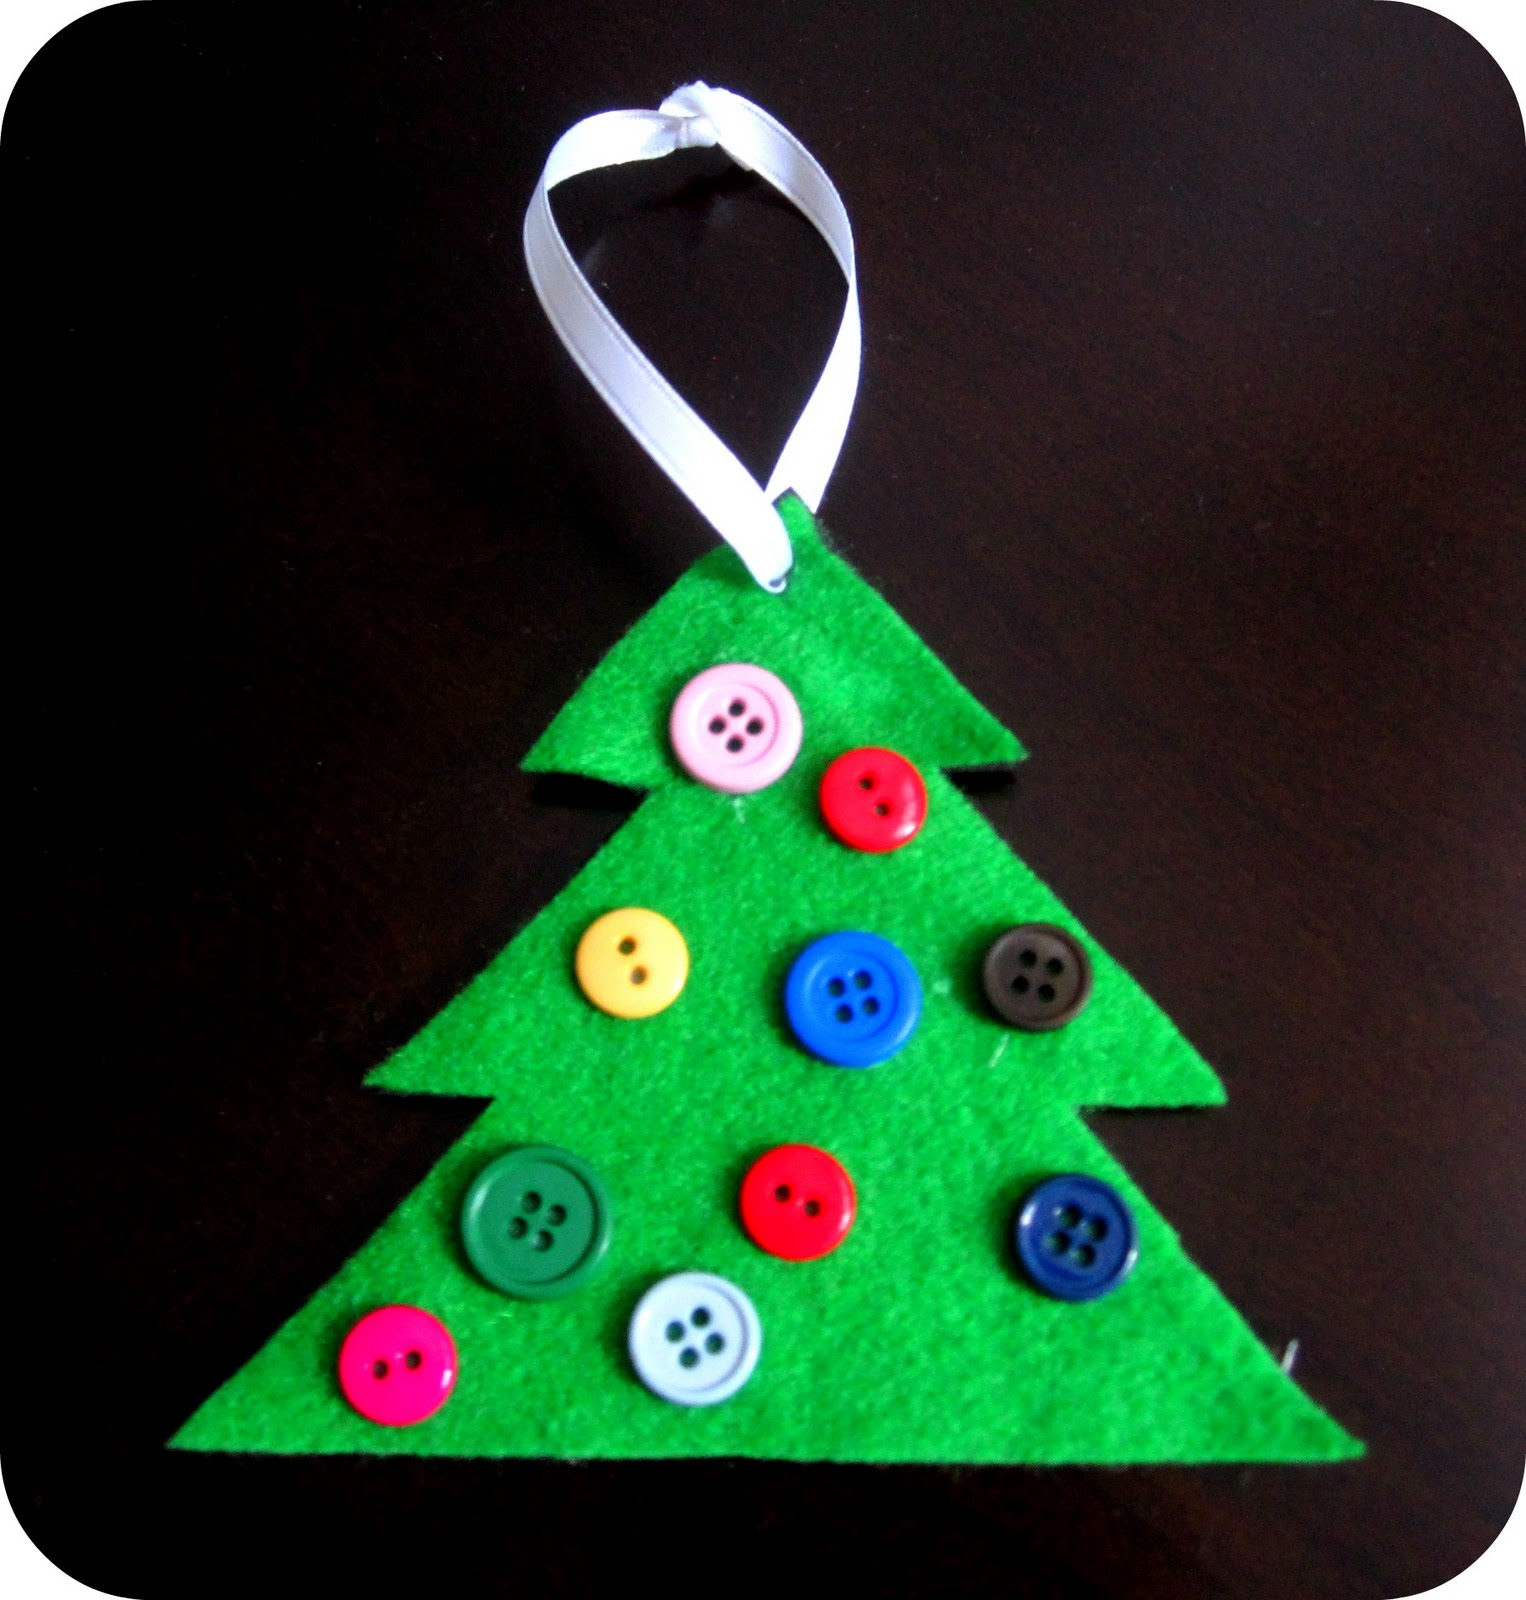 Button christmas tree ornament cute simple hands on Christmas tree ornaments ideas